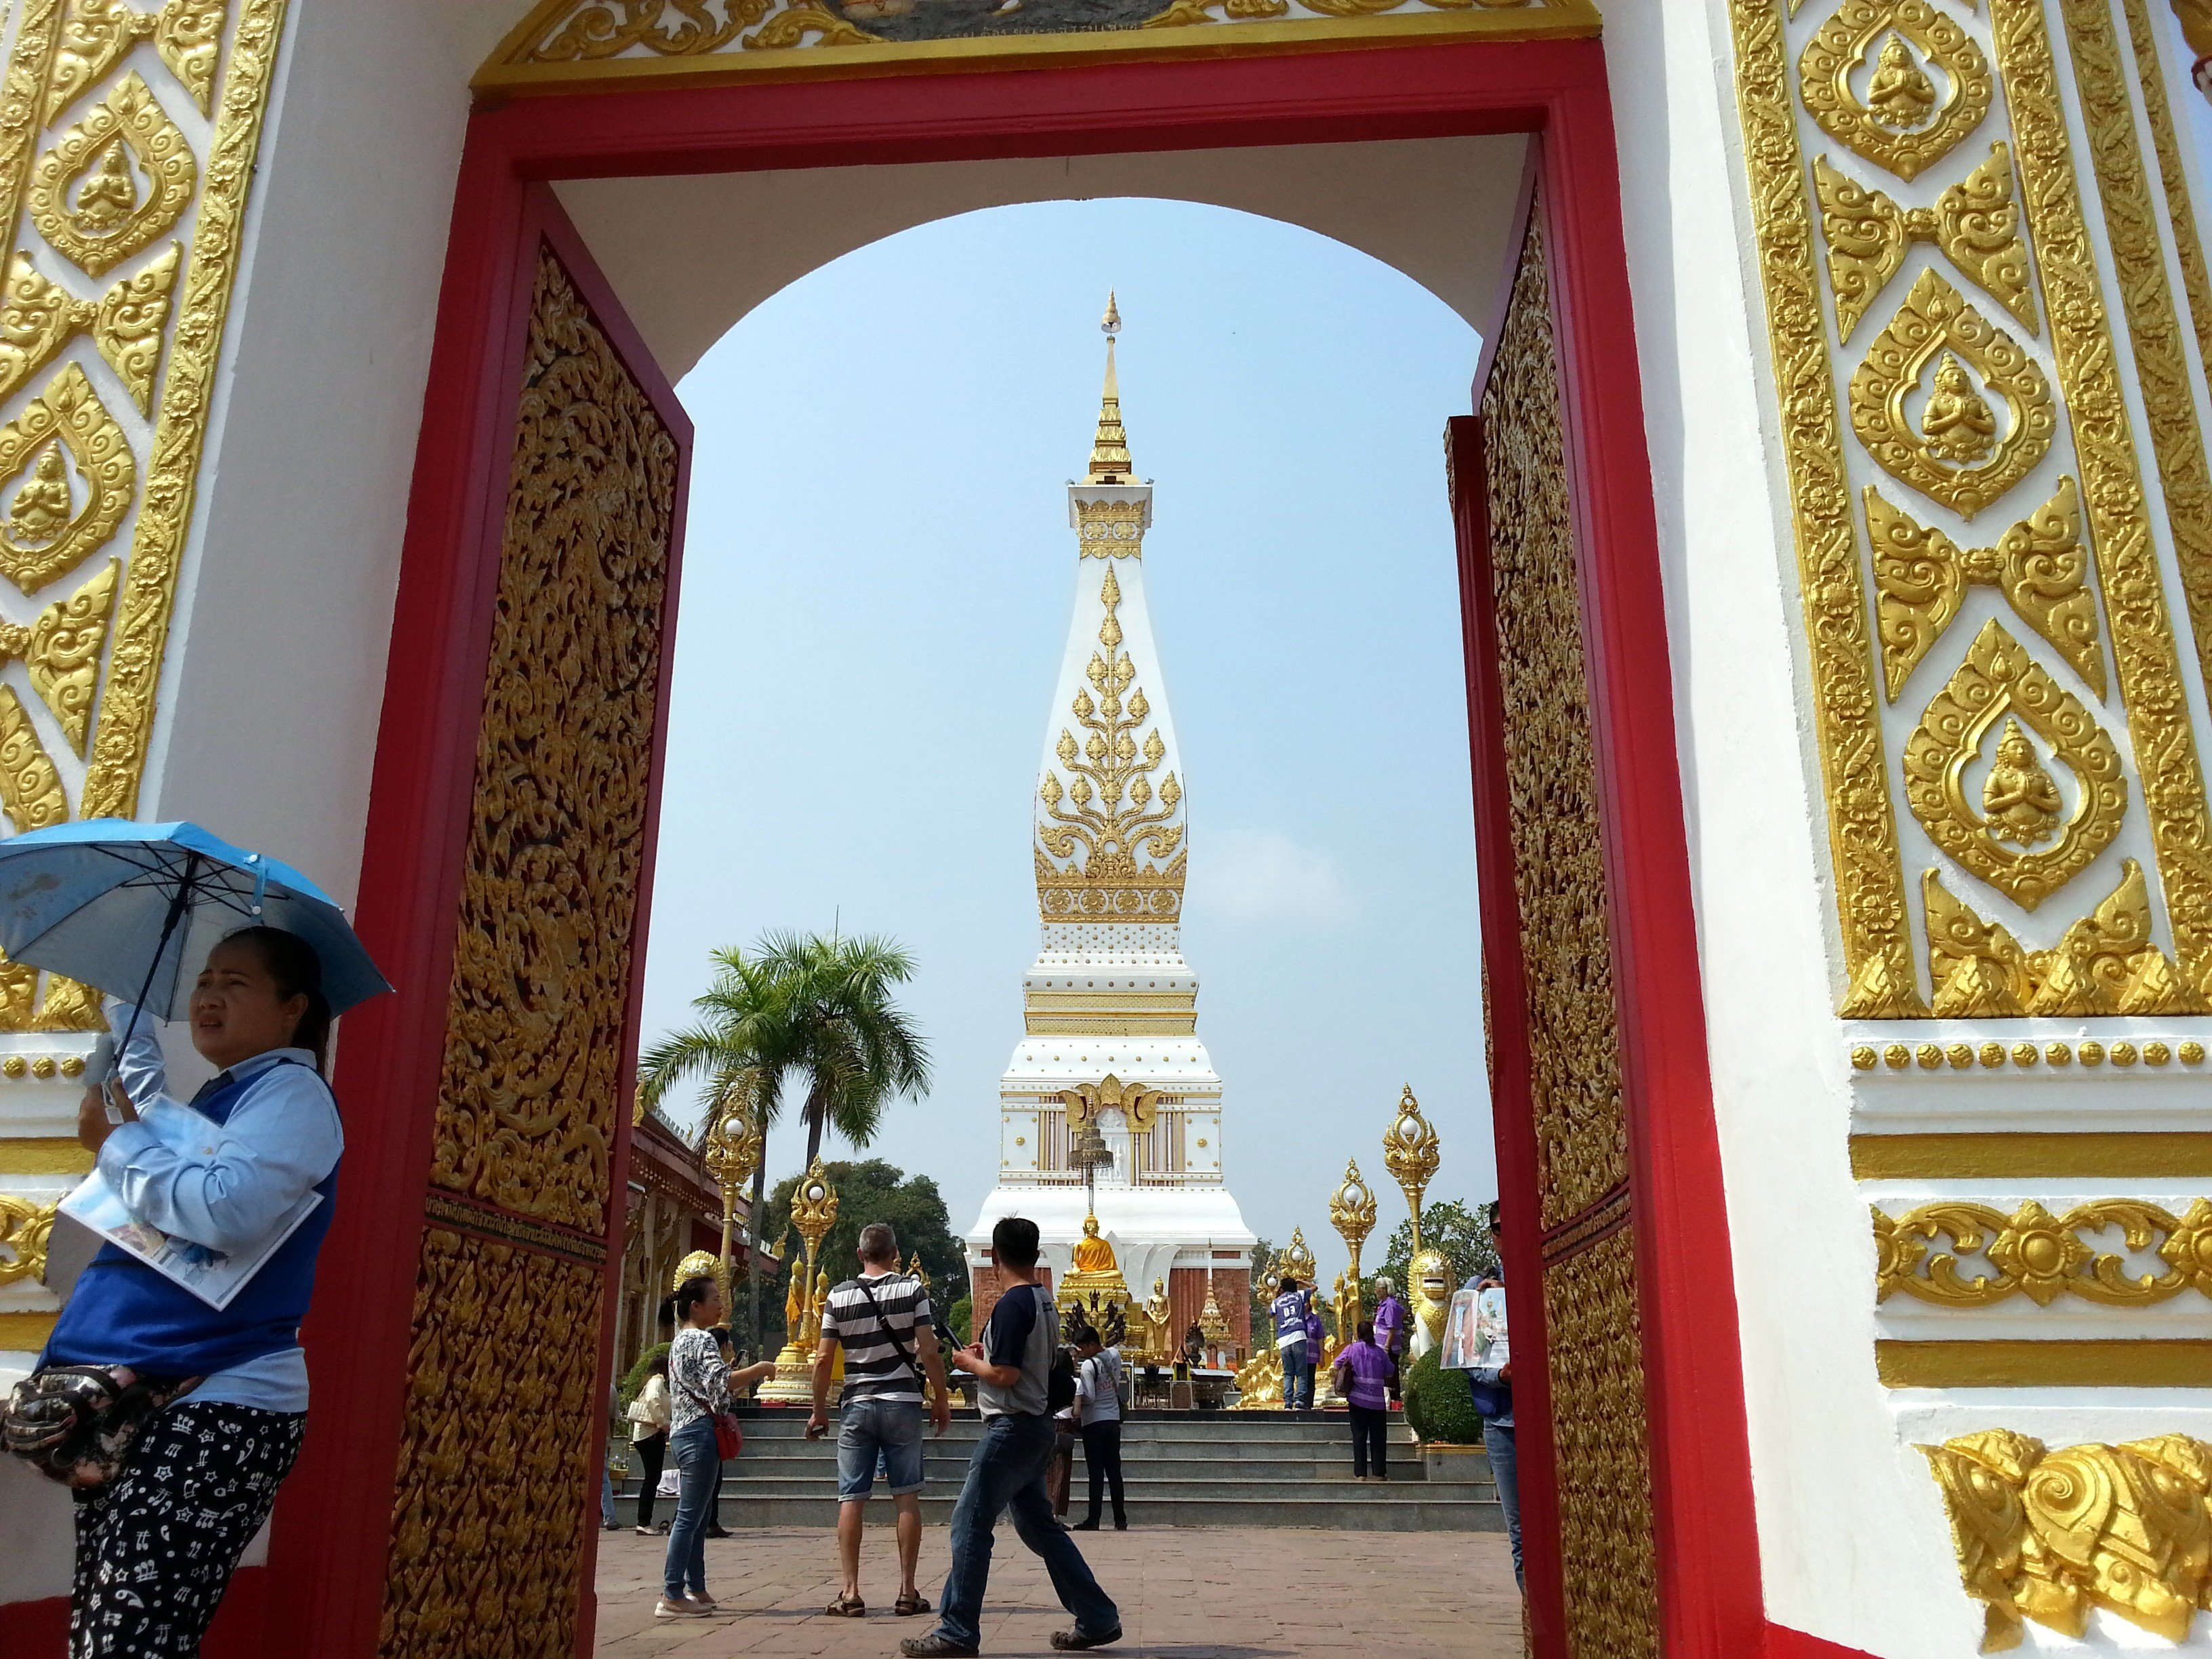 The famous chedi at Wat Phra That Phanom